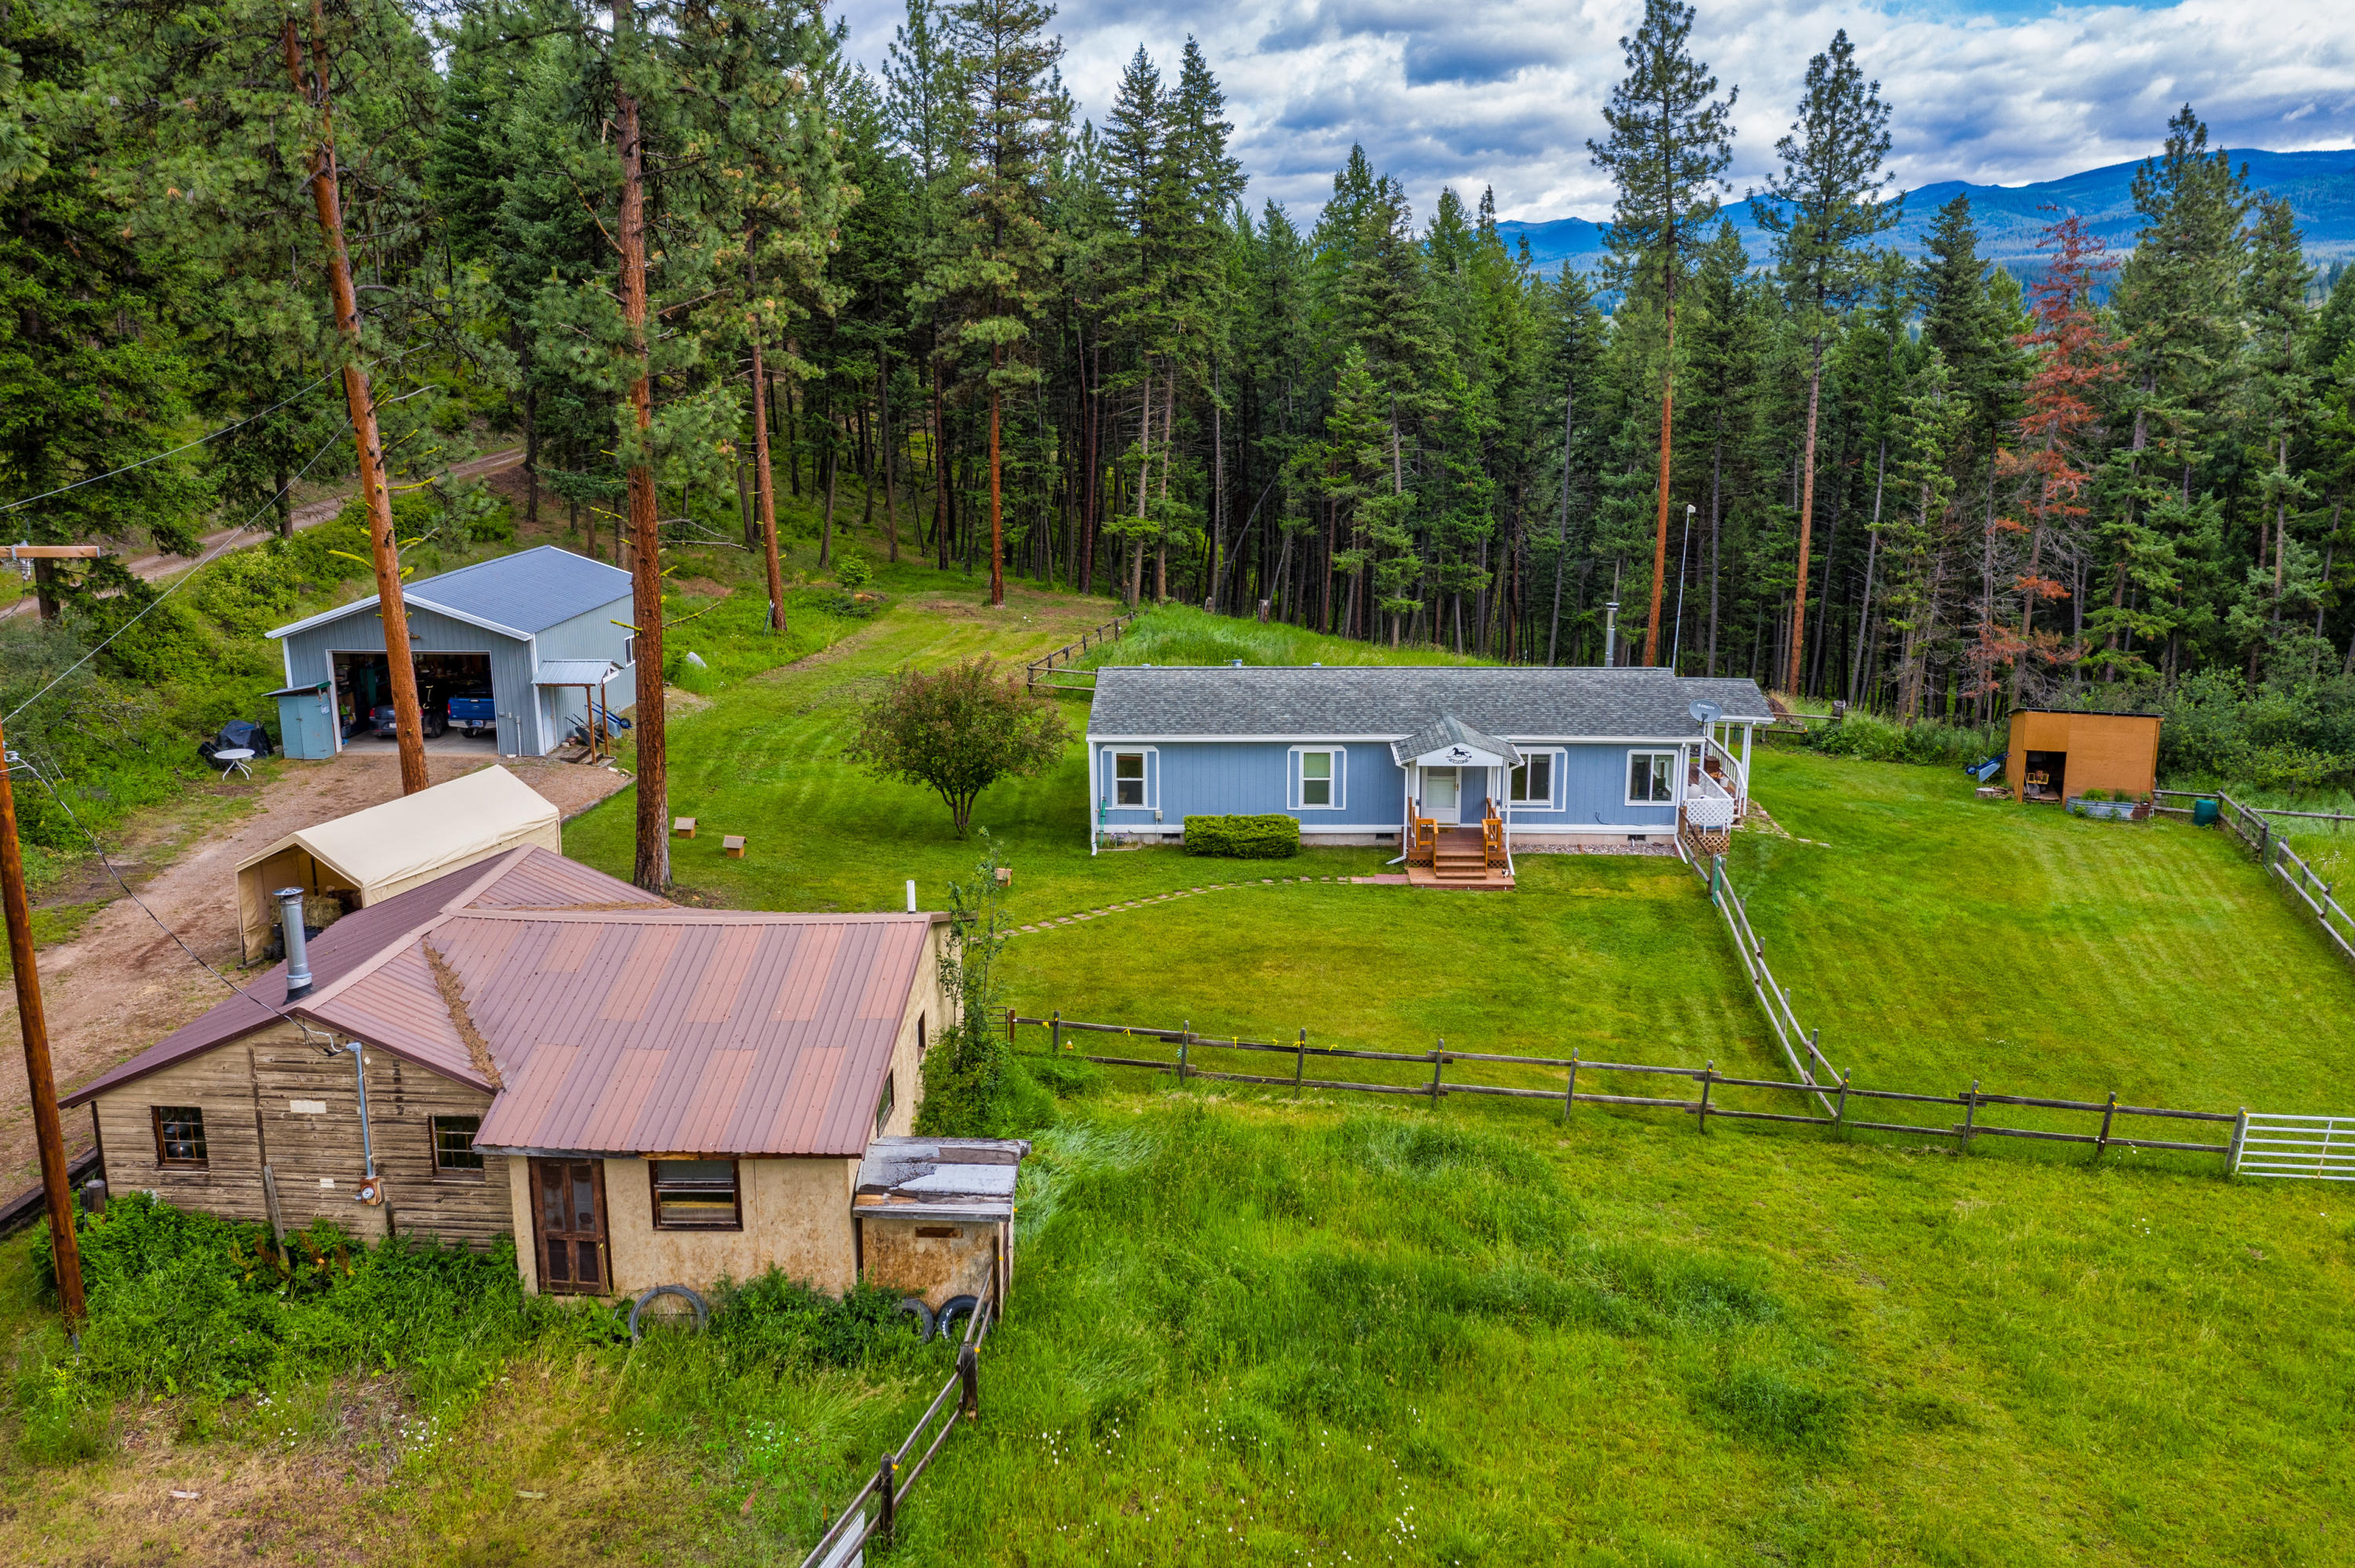 3 bed 2 bath horse property on 4o acres